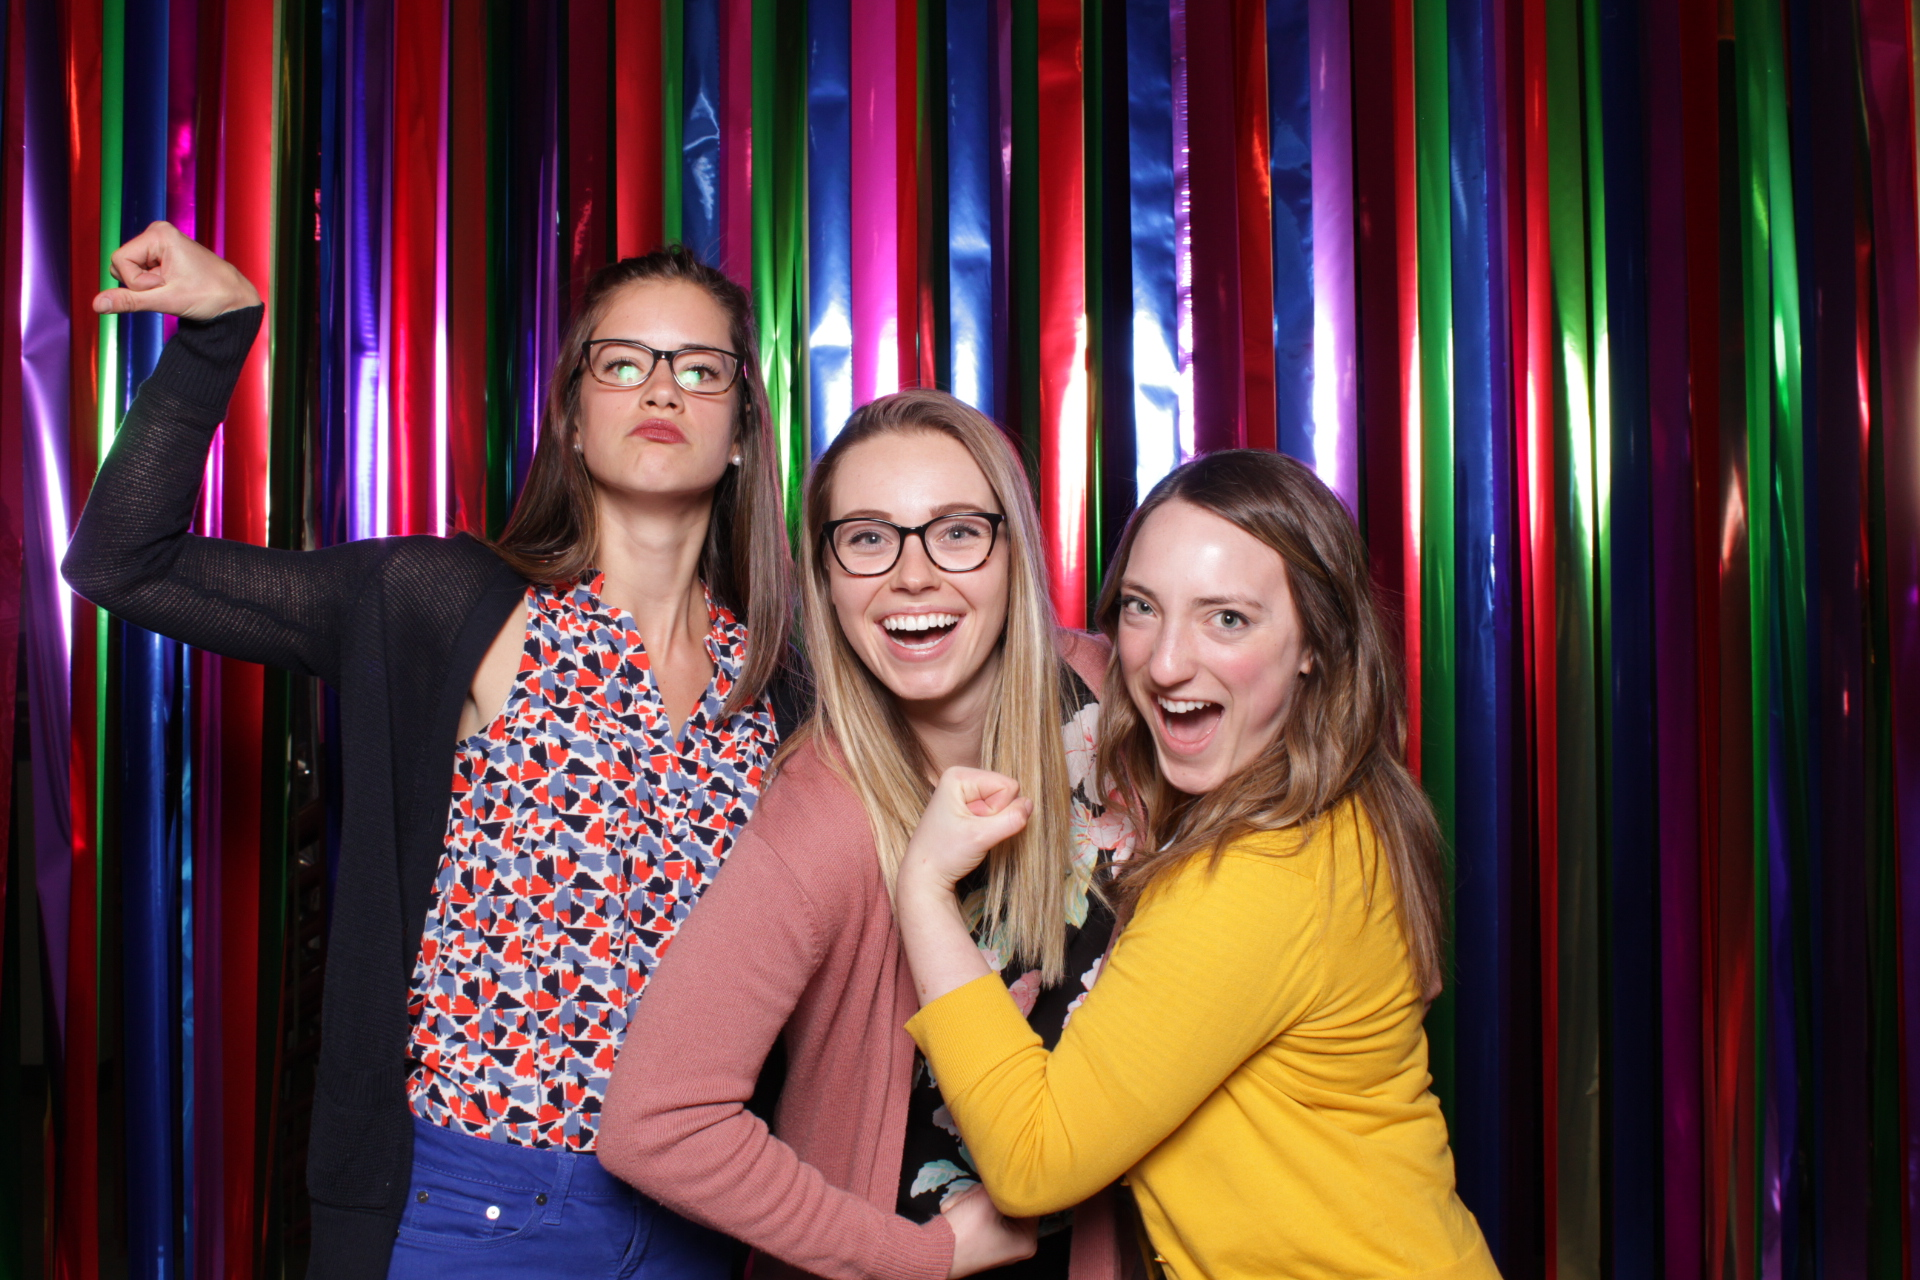 Minneapolis_corporate_Party_photo_booth_rental (1).jpg